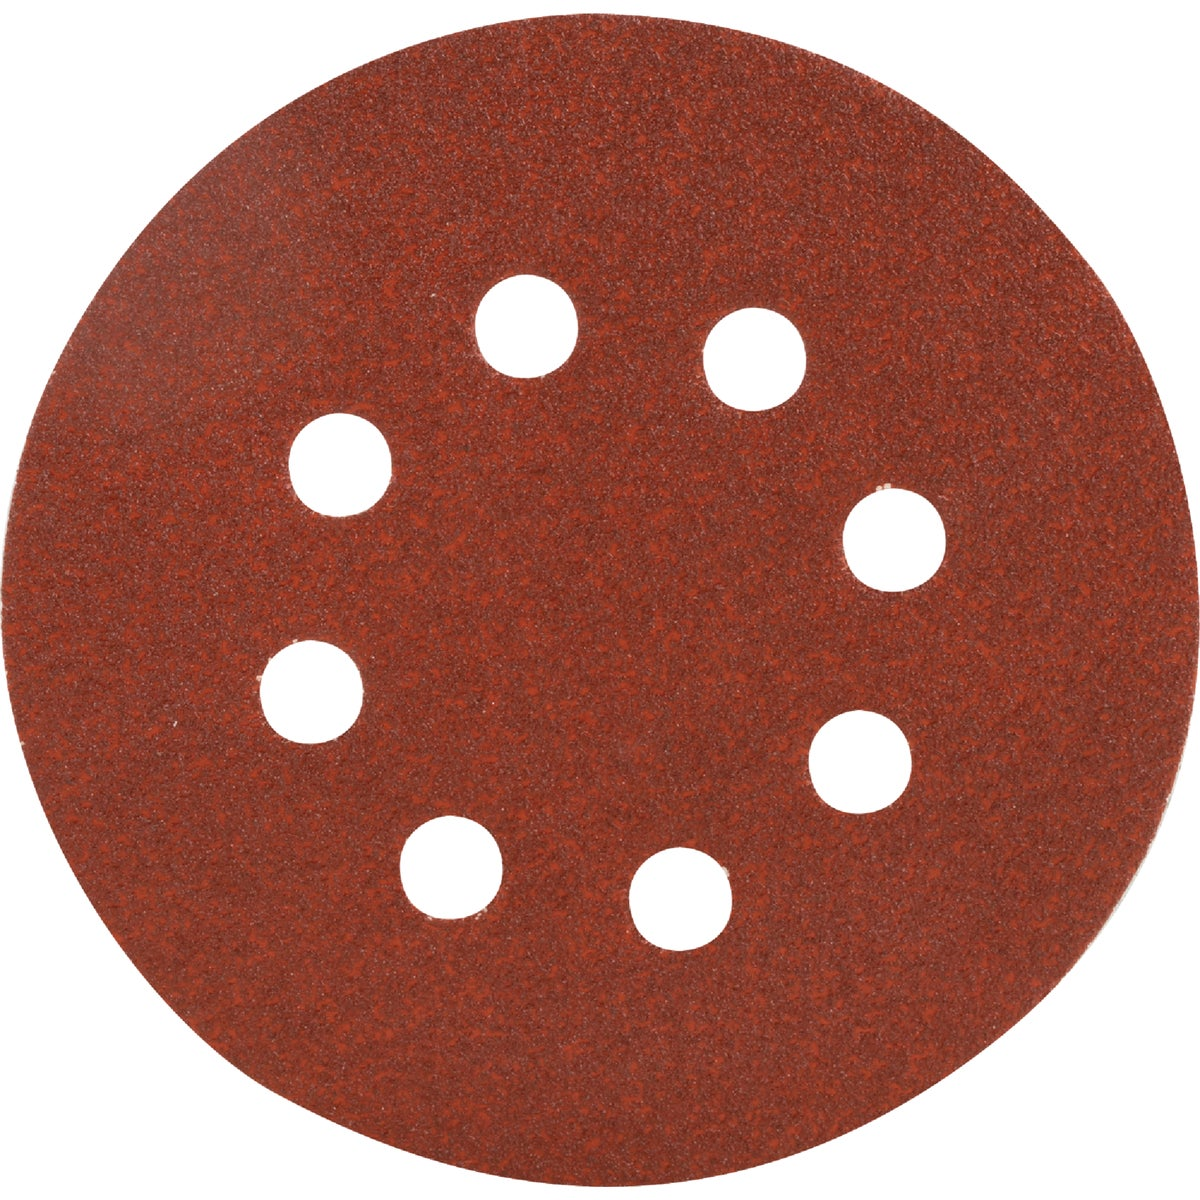 50PK 80G SANDPAPER - 354057 by Ali Industries Inc